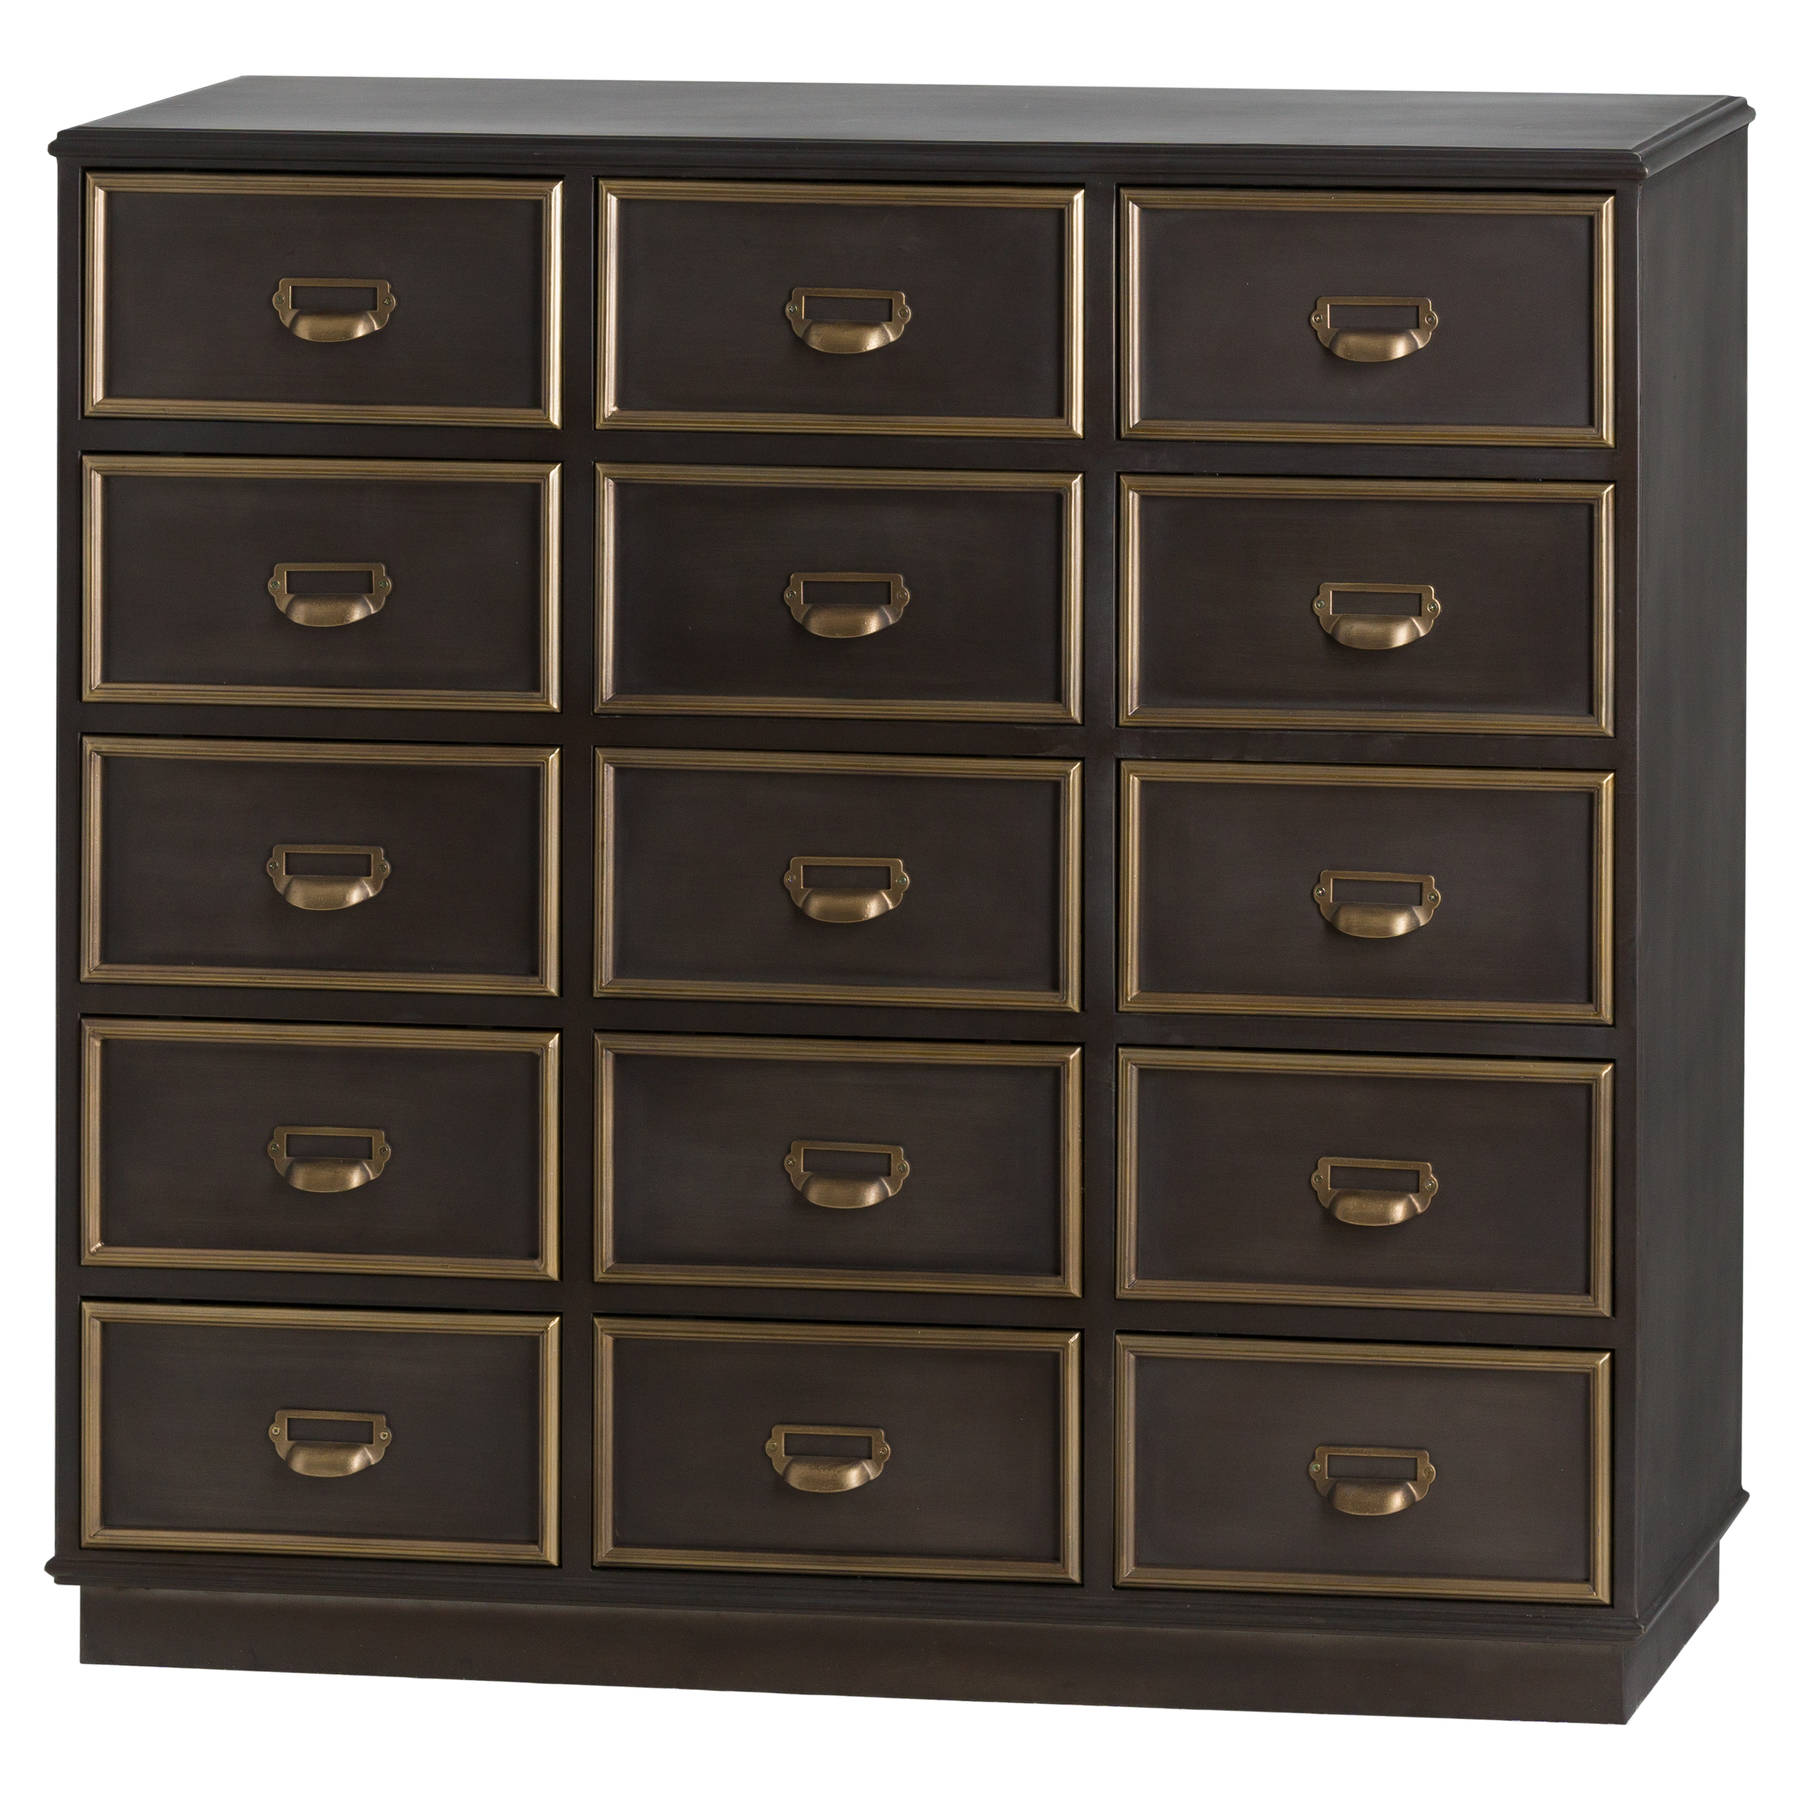 new concept 4294b 44050 Black Chest of Drawers - Seattle Range